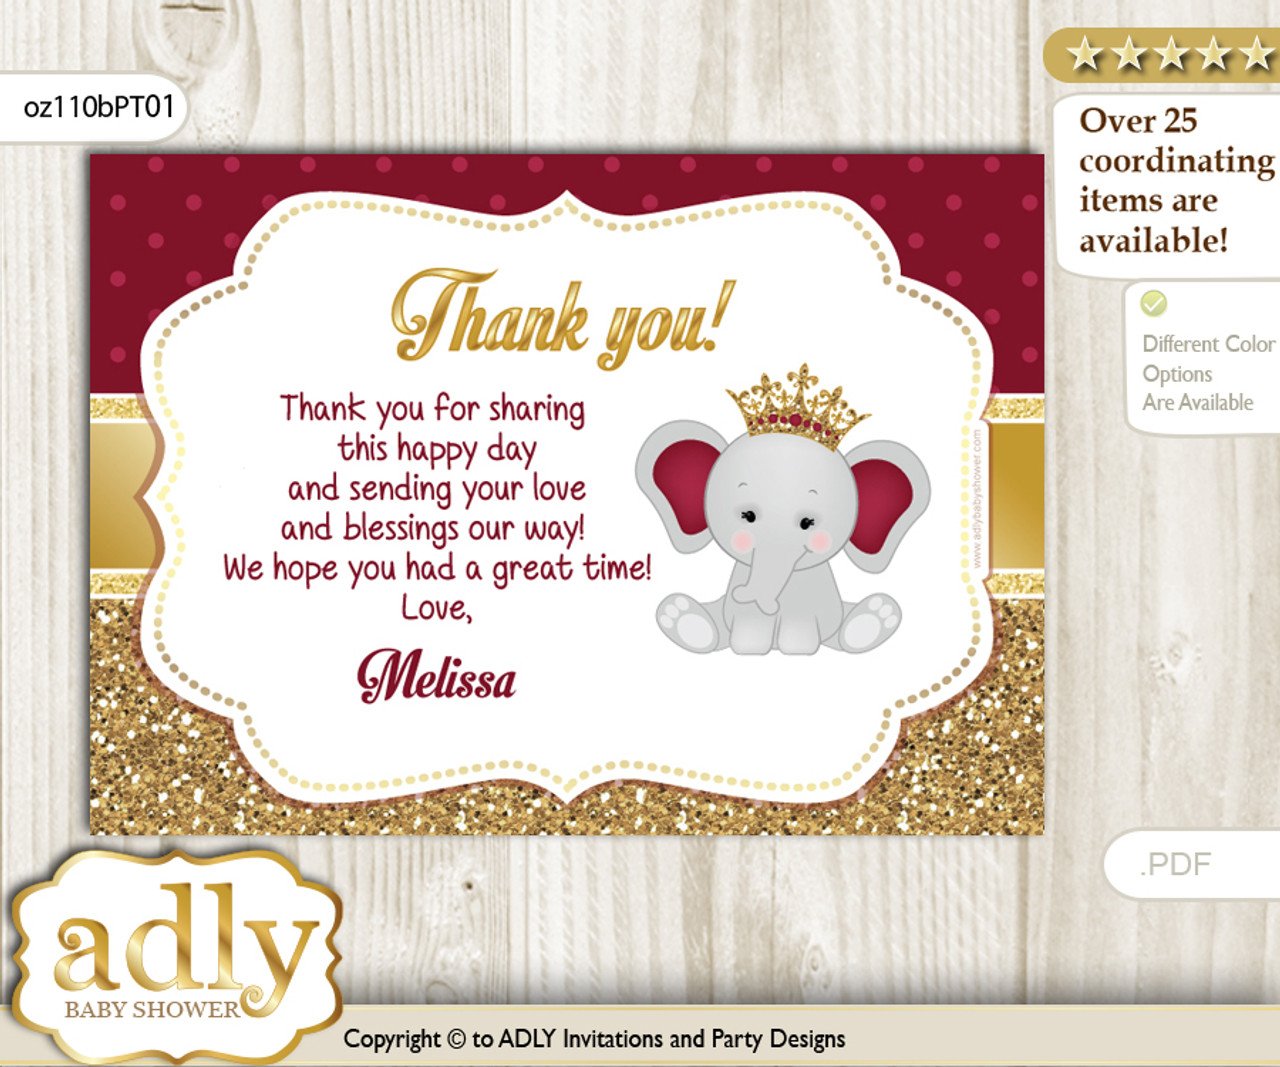 Princess Elephant Thank You Printable Card With Name Personalization For Baby Shower Or Birthday Party